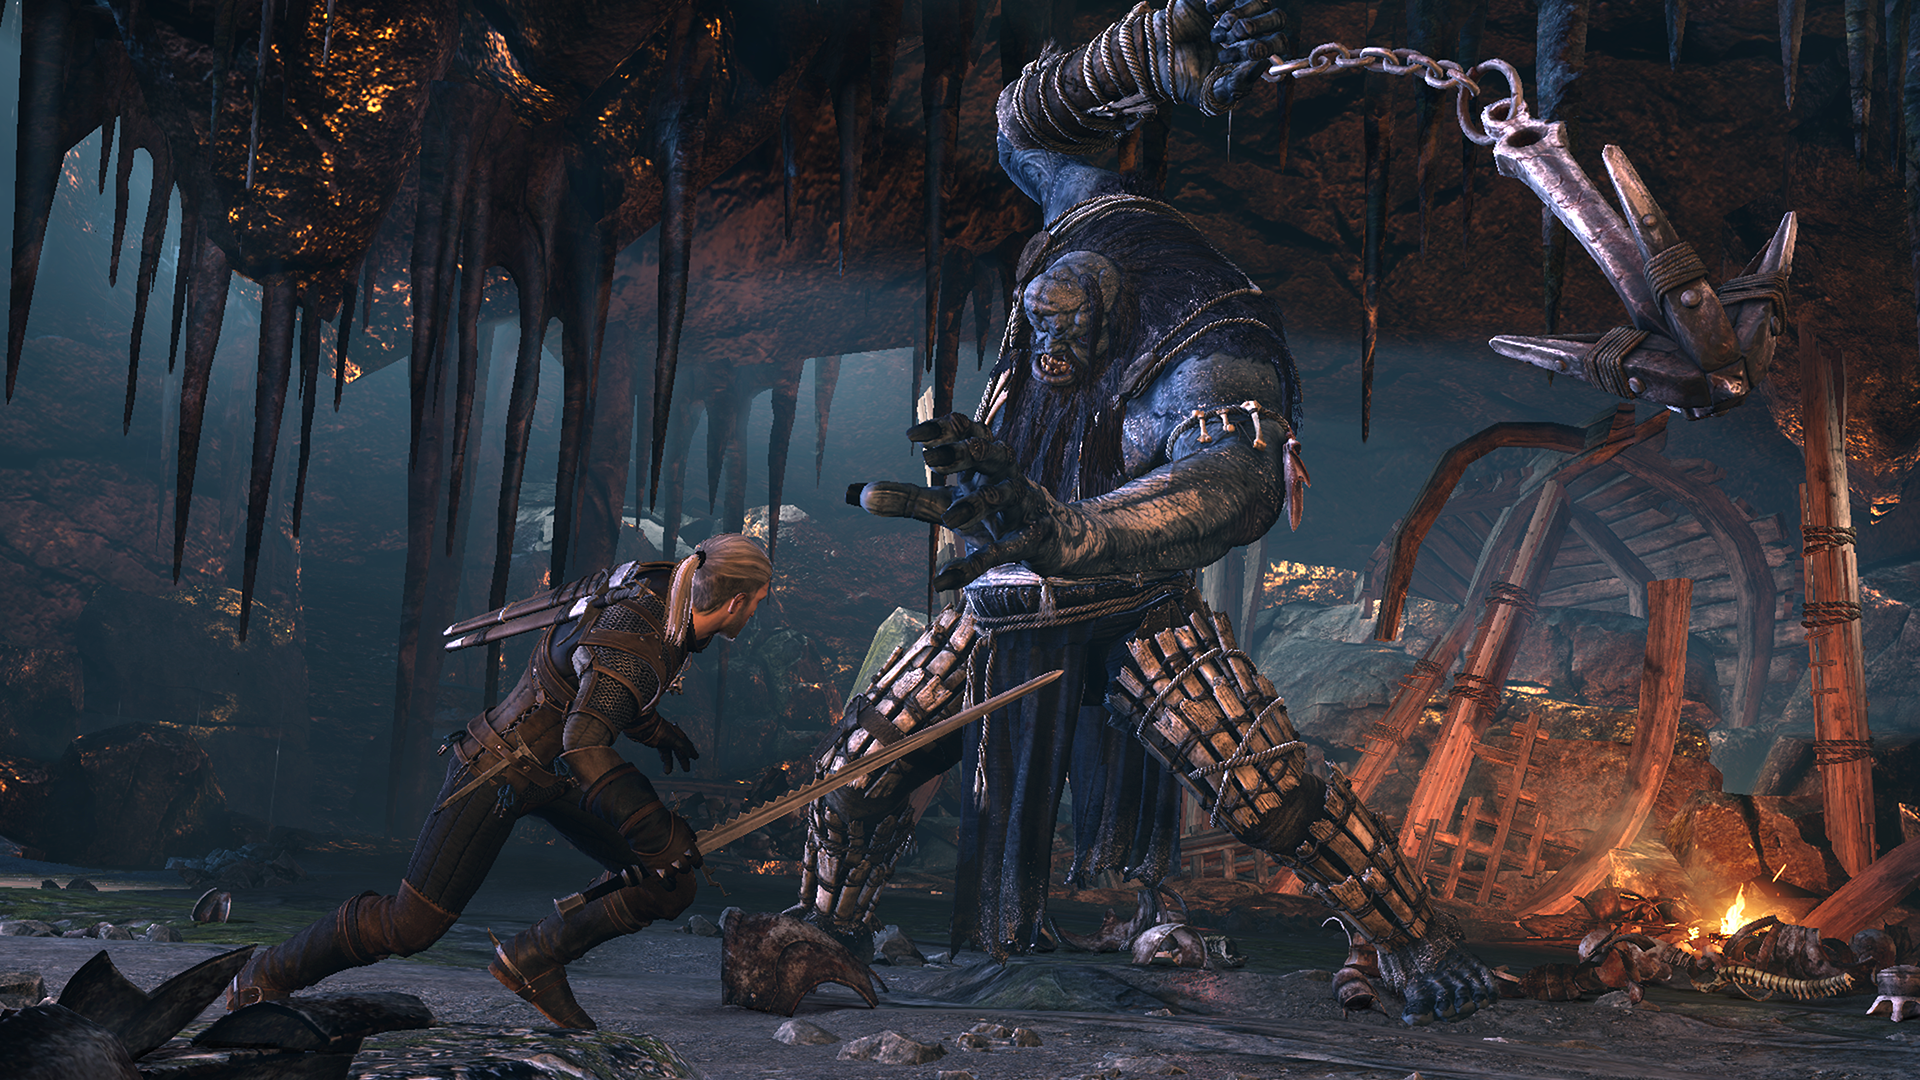 6274_the_witcher_3_wild_hunt_ice_giant_fight-free-hd-wallpapers - hd